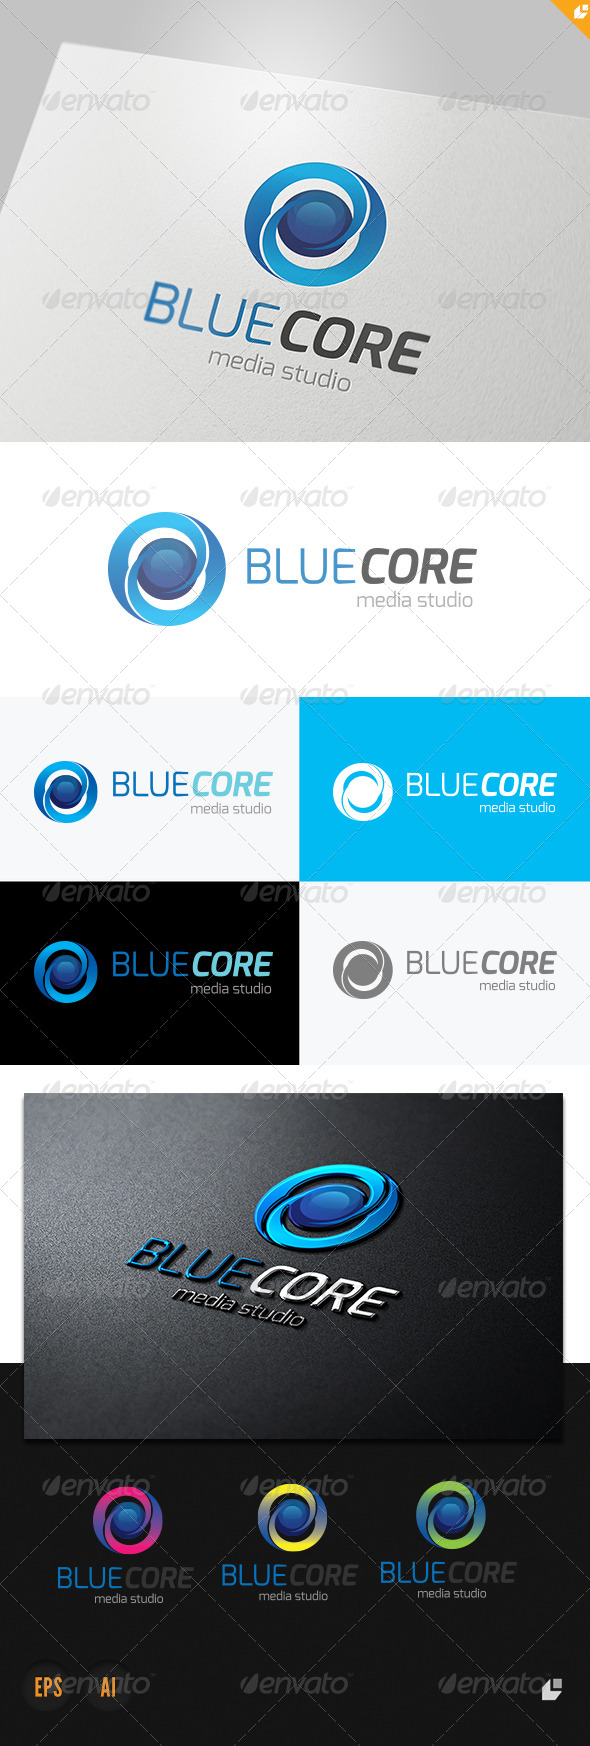 Blue Core Media Studio Logo